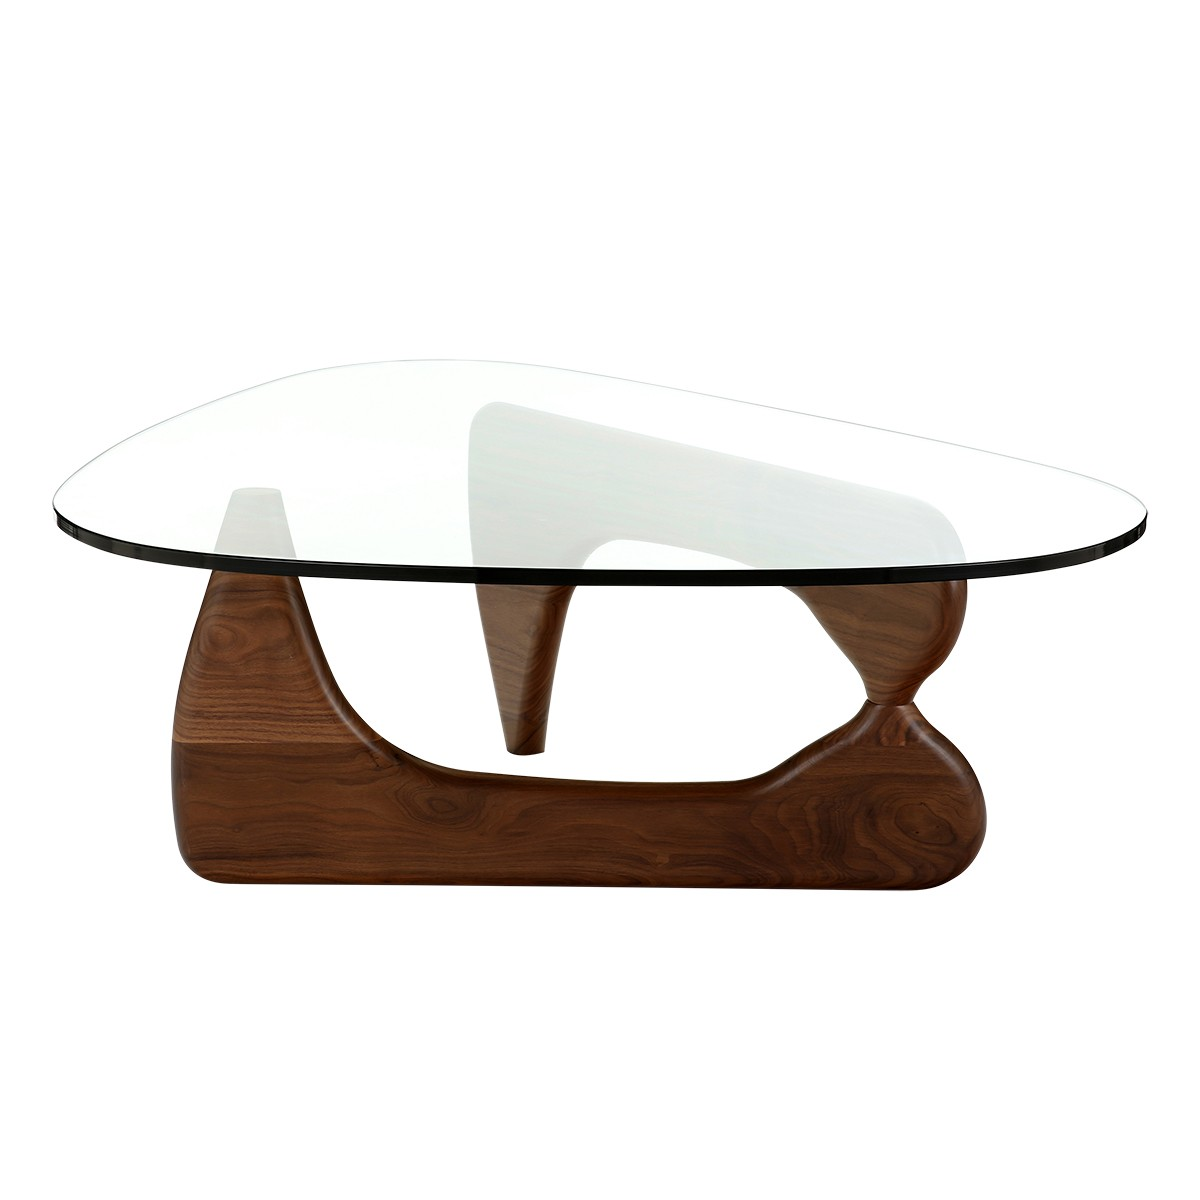 Image of: Decoration Noguchi Coffee Table